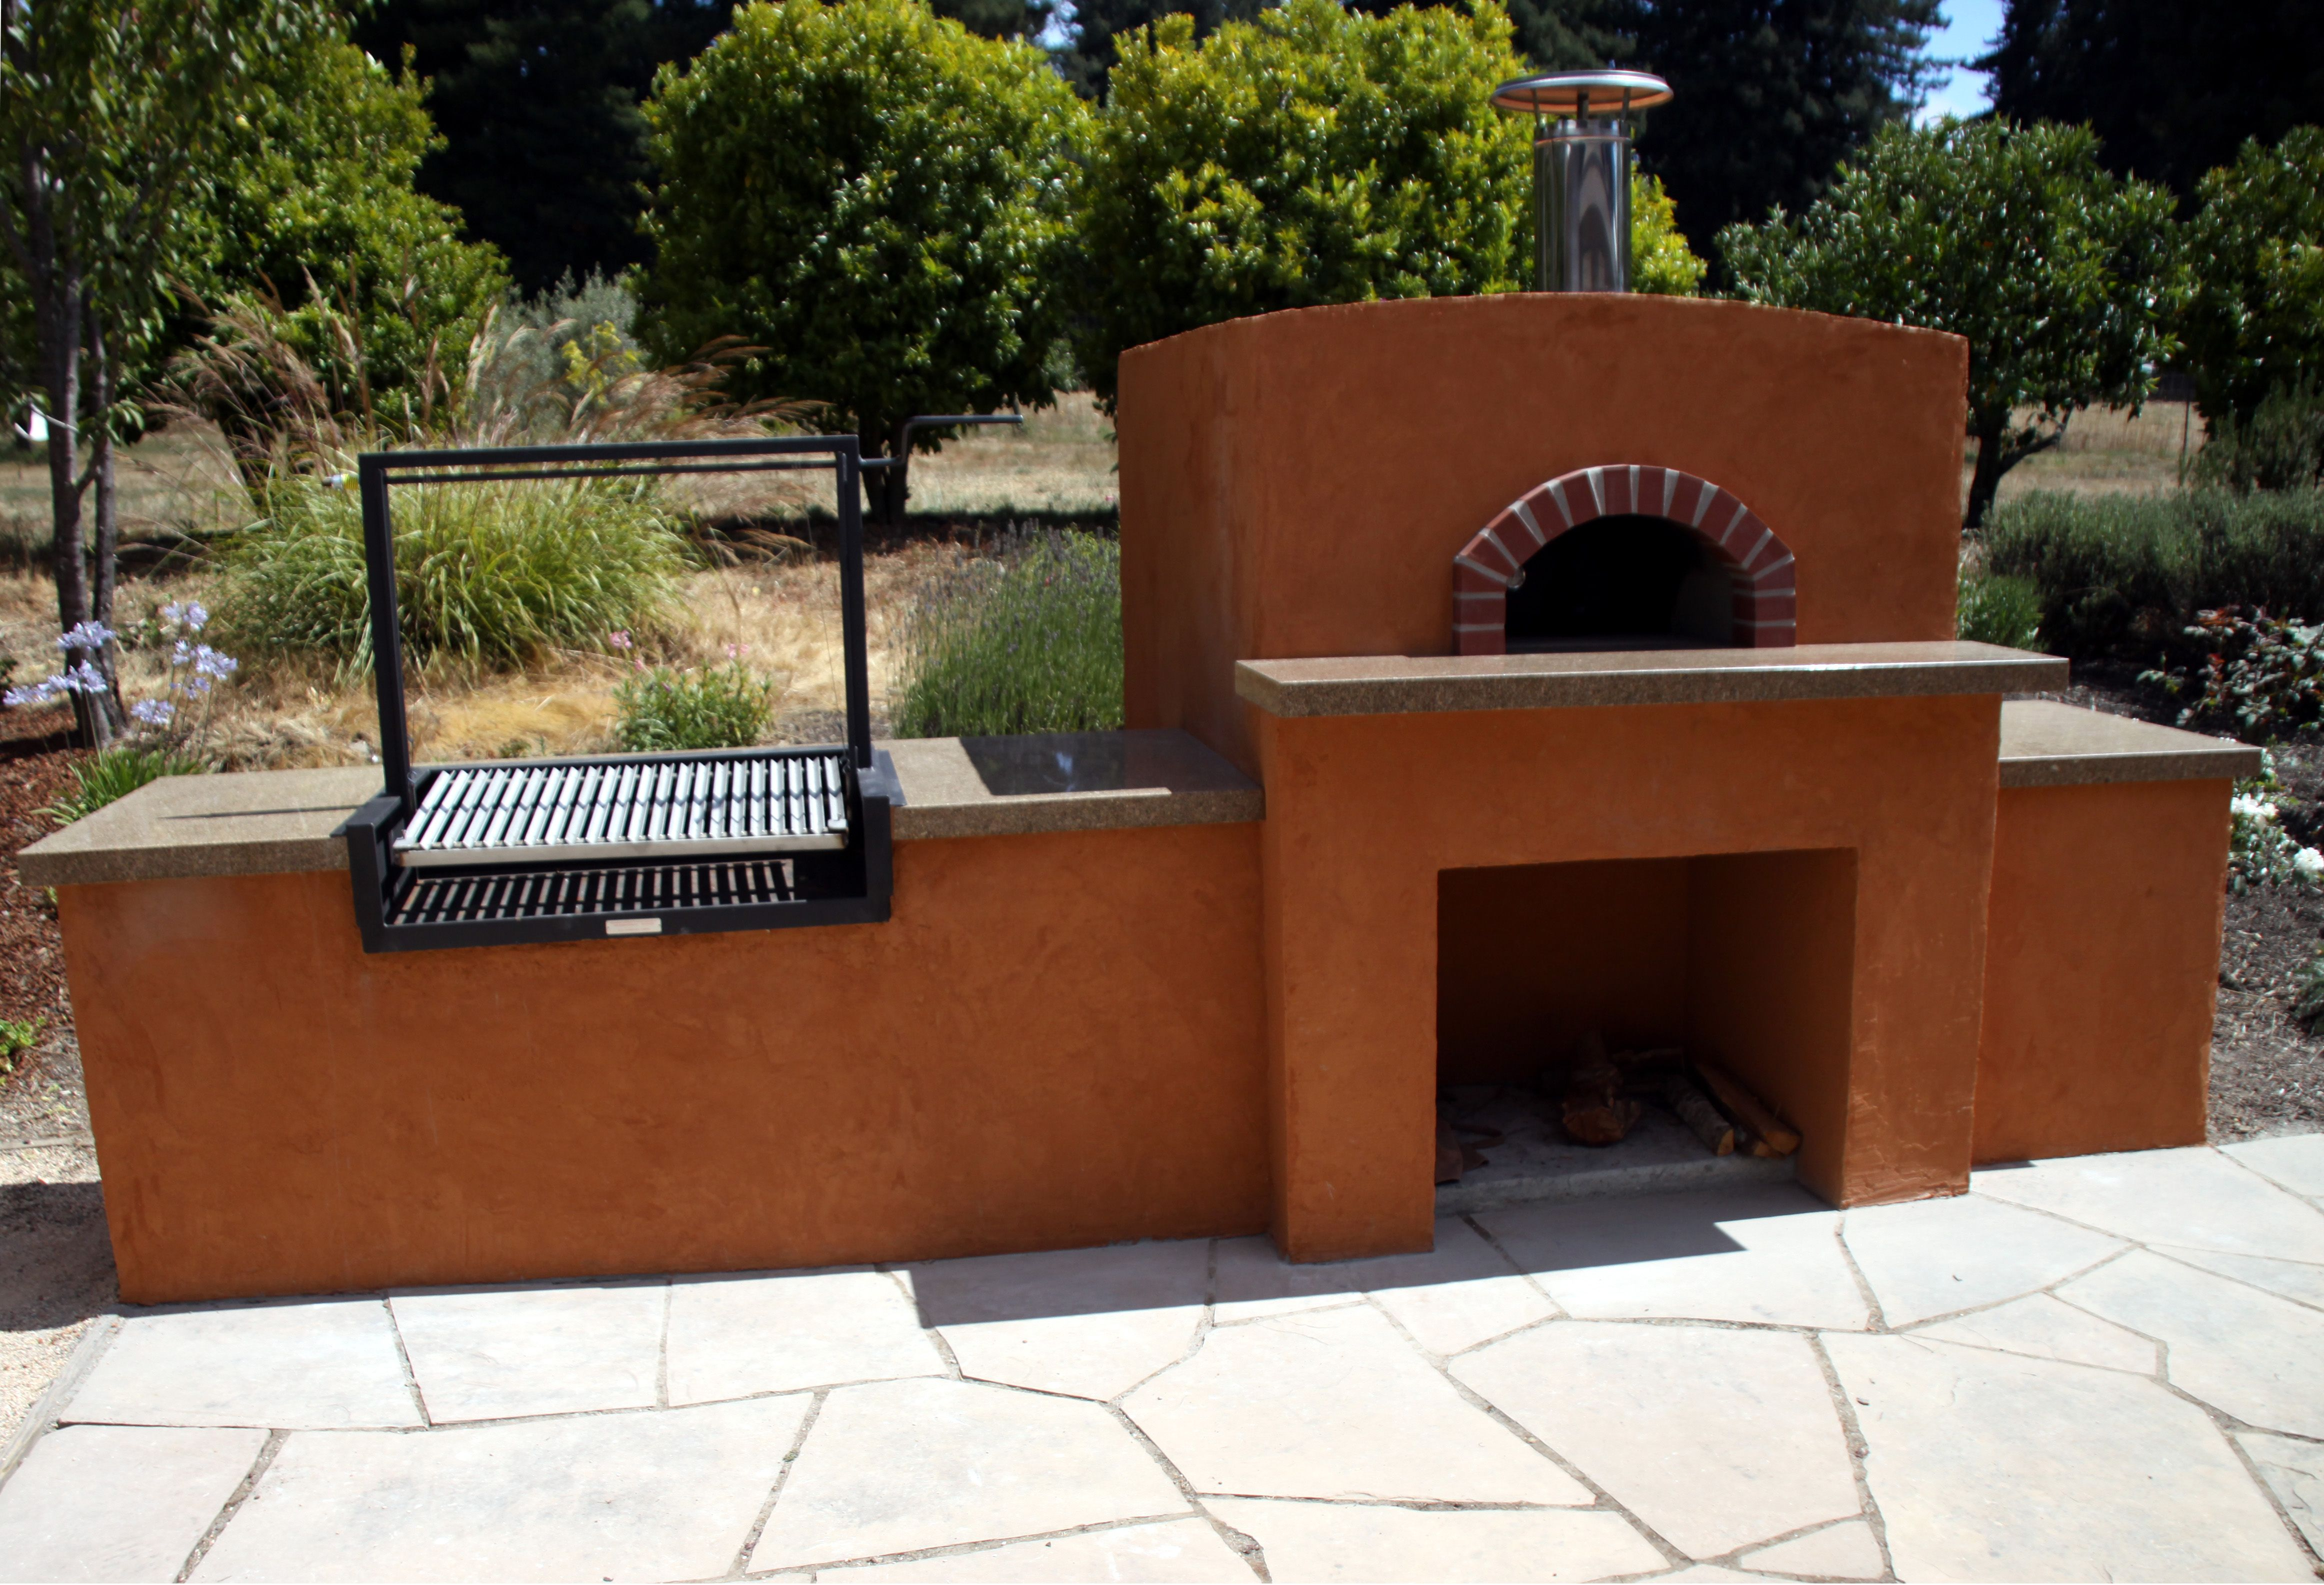 No gas here charcoal bbq and wood fired pizza oven built into